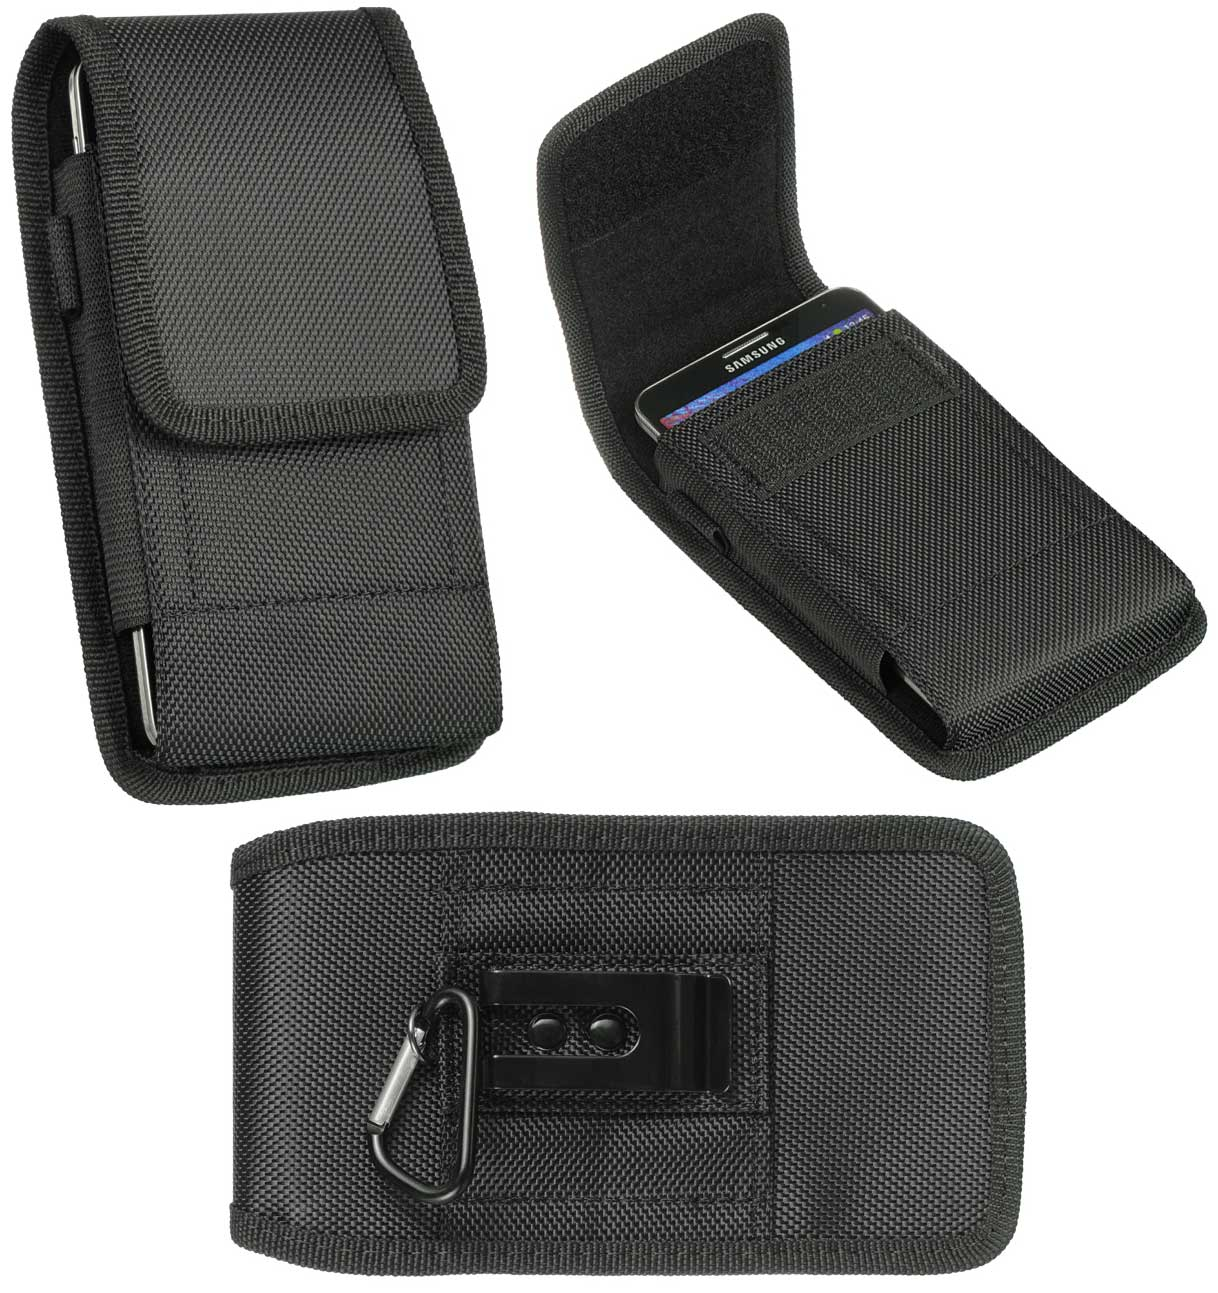 Sony Xperia E3 Neoprene Nylon Case Pouch Clip Hook Black